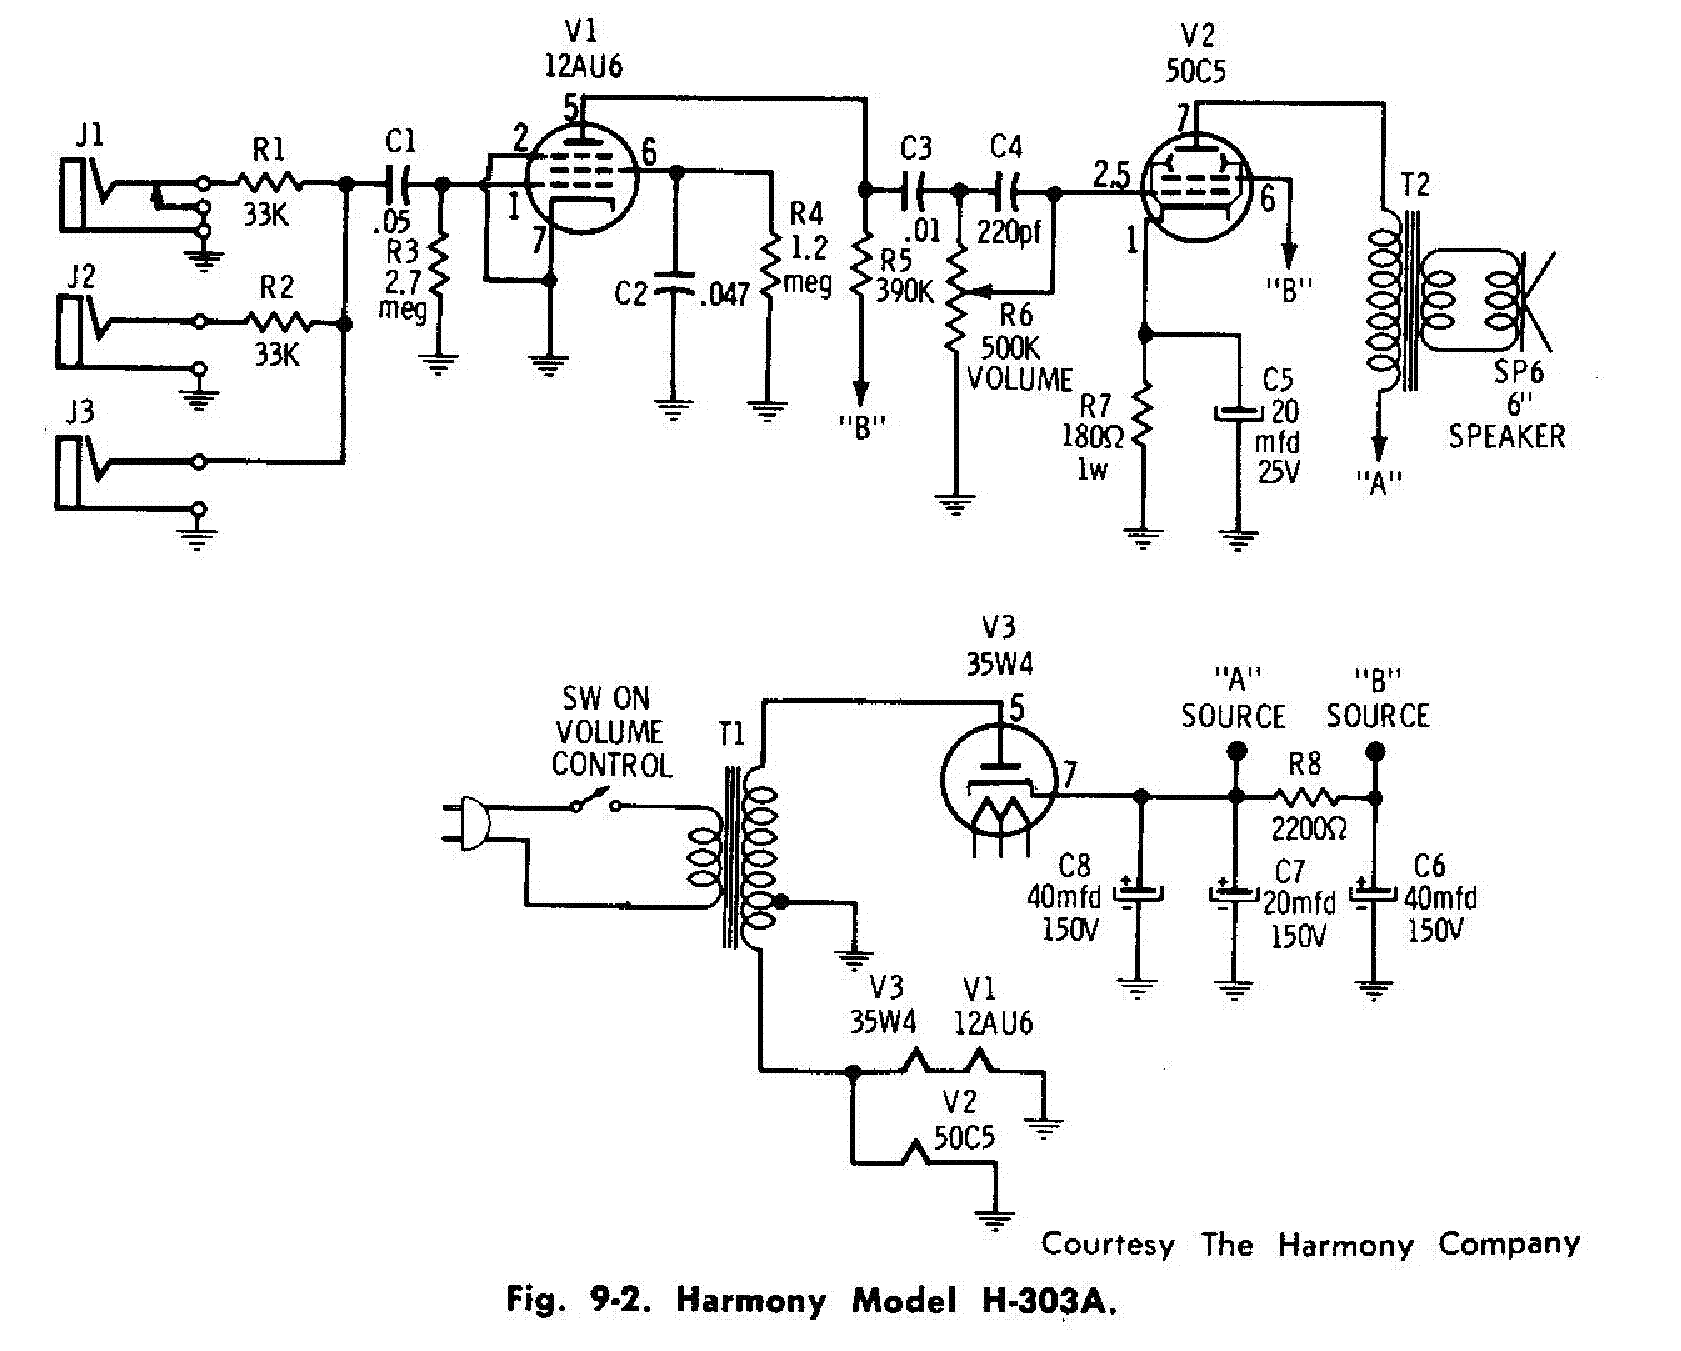 Riaa Pre  Schematic in addition Valve further 74116 Ecc82 Based Pre  7 as well Princeton Reverb further 40 Yaqin Mc 84l El84 Push Pull Tube  lifier. on 12ax7 amplifier circuit